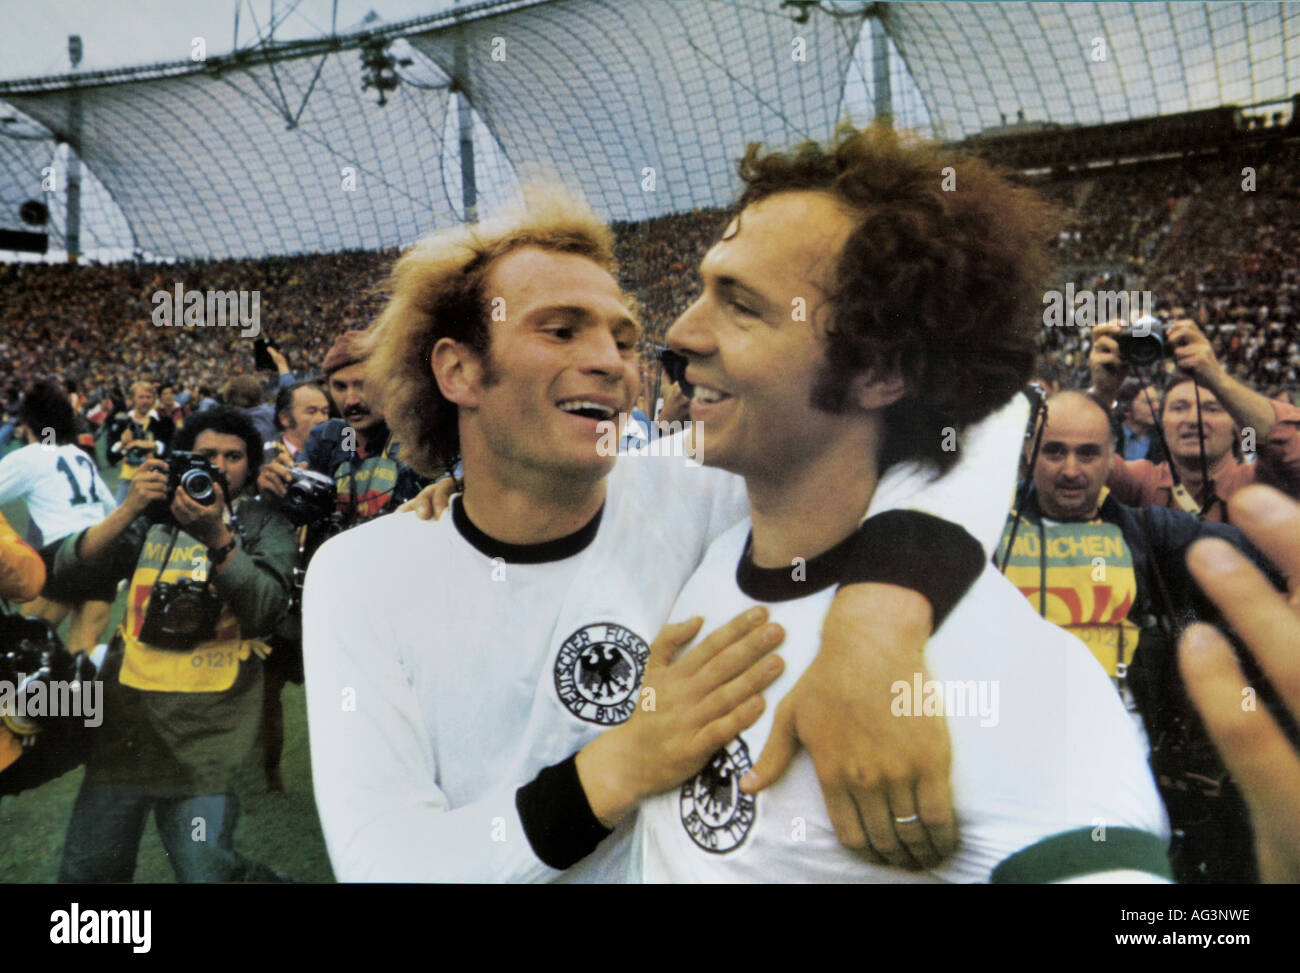 Sport, football, soccer, world championship, WM, finale, Germany about Netherland, (2:1), Munich, Franz Beckenbauer and Uli Hoeness, 7.7.1974, Additional-Rights-Clearances-NA - Stock Image